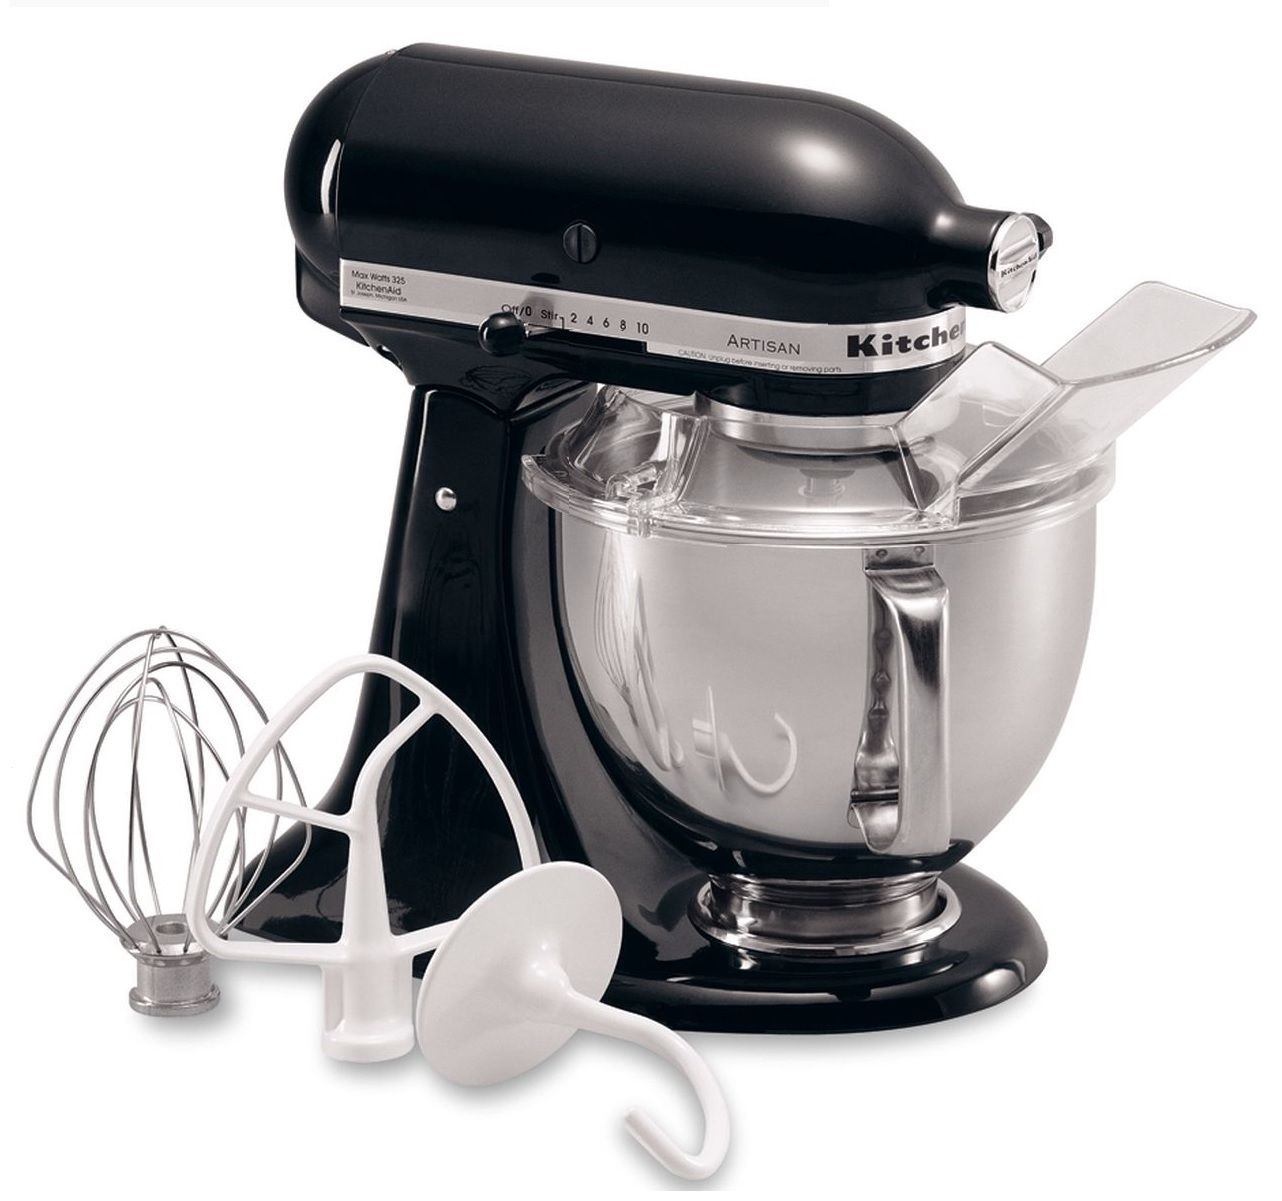 KitchenAid RRK150 5 QUART ARTISAN SERIES TILT HEAD STAND MIXER ONYX BLACK (Certified Refurbished)